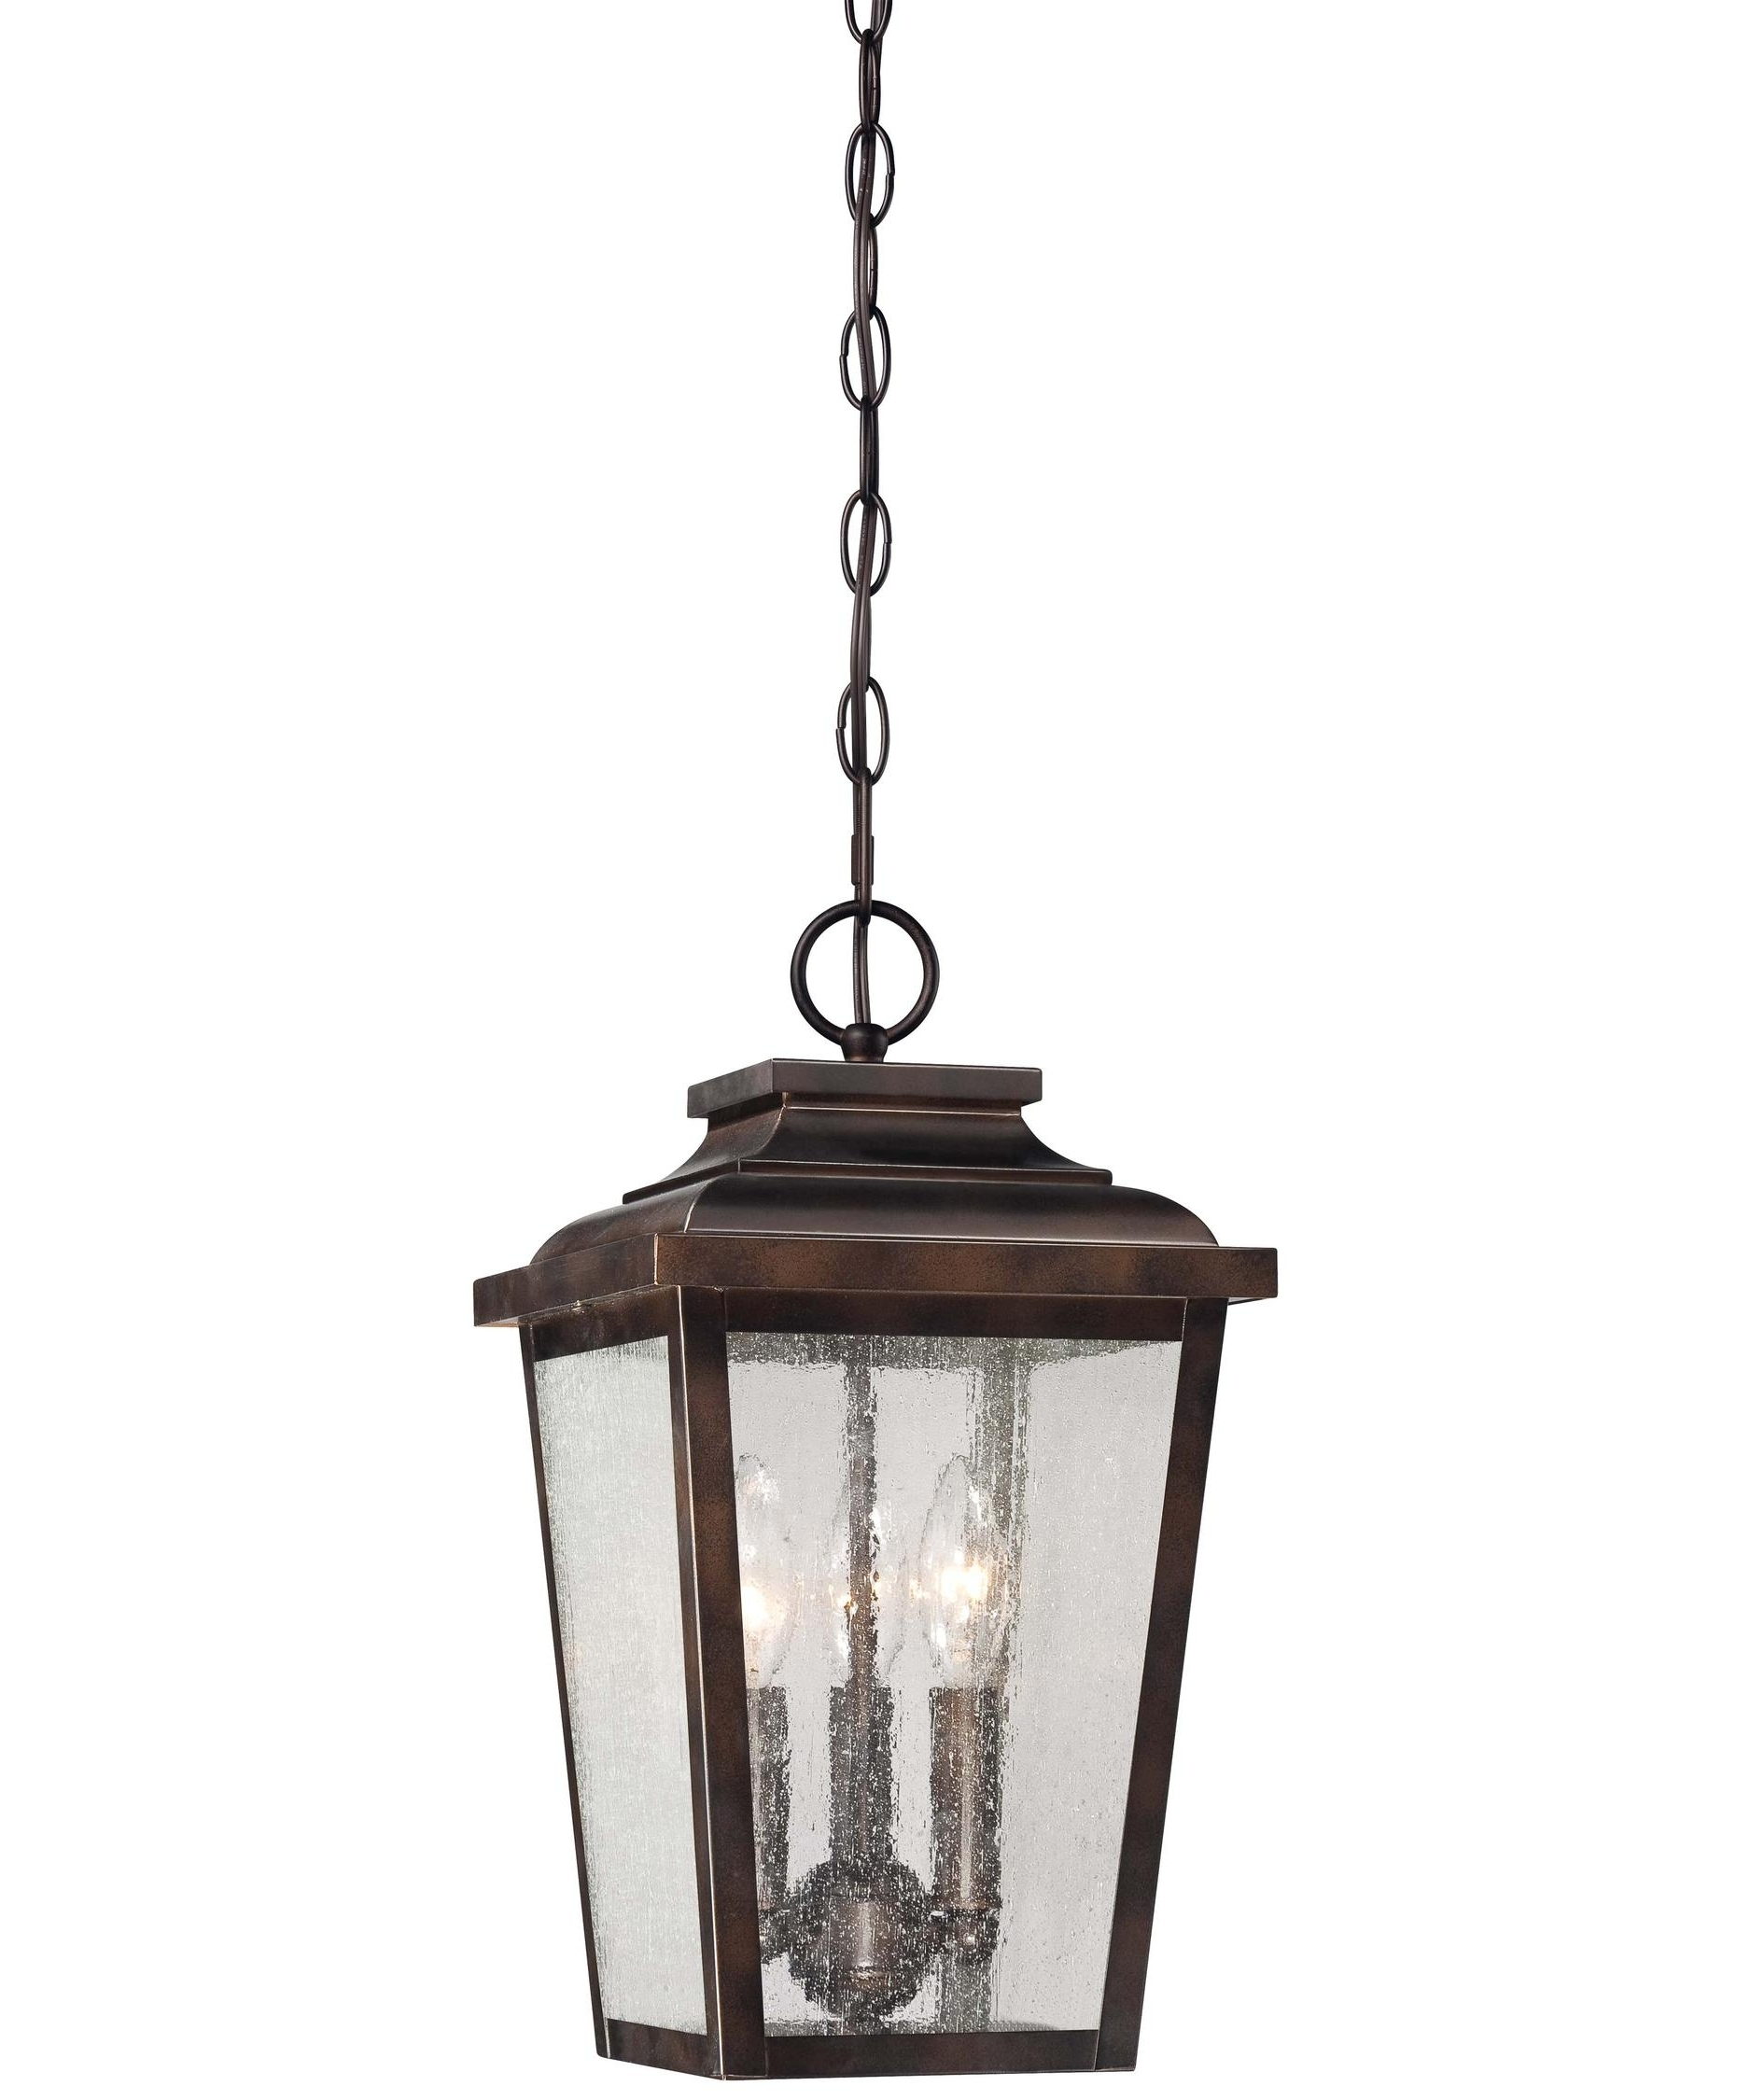 Minka Lavery 72174 Irvington Manor 9 Inch Wide 3 Light Outdoor For 2018 Outdoor Hanging Pendant Lights (View 1 of 20)